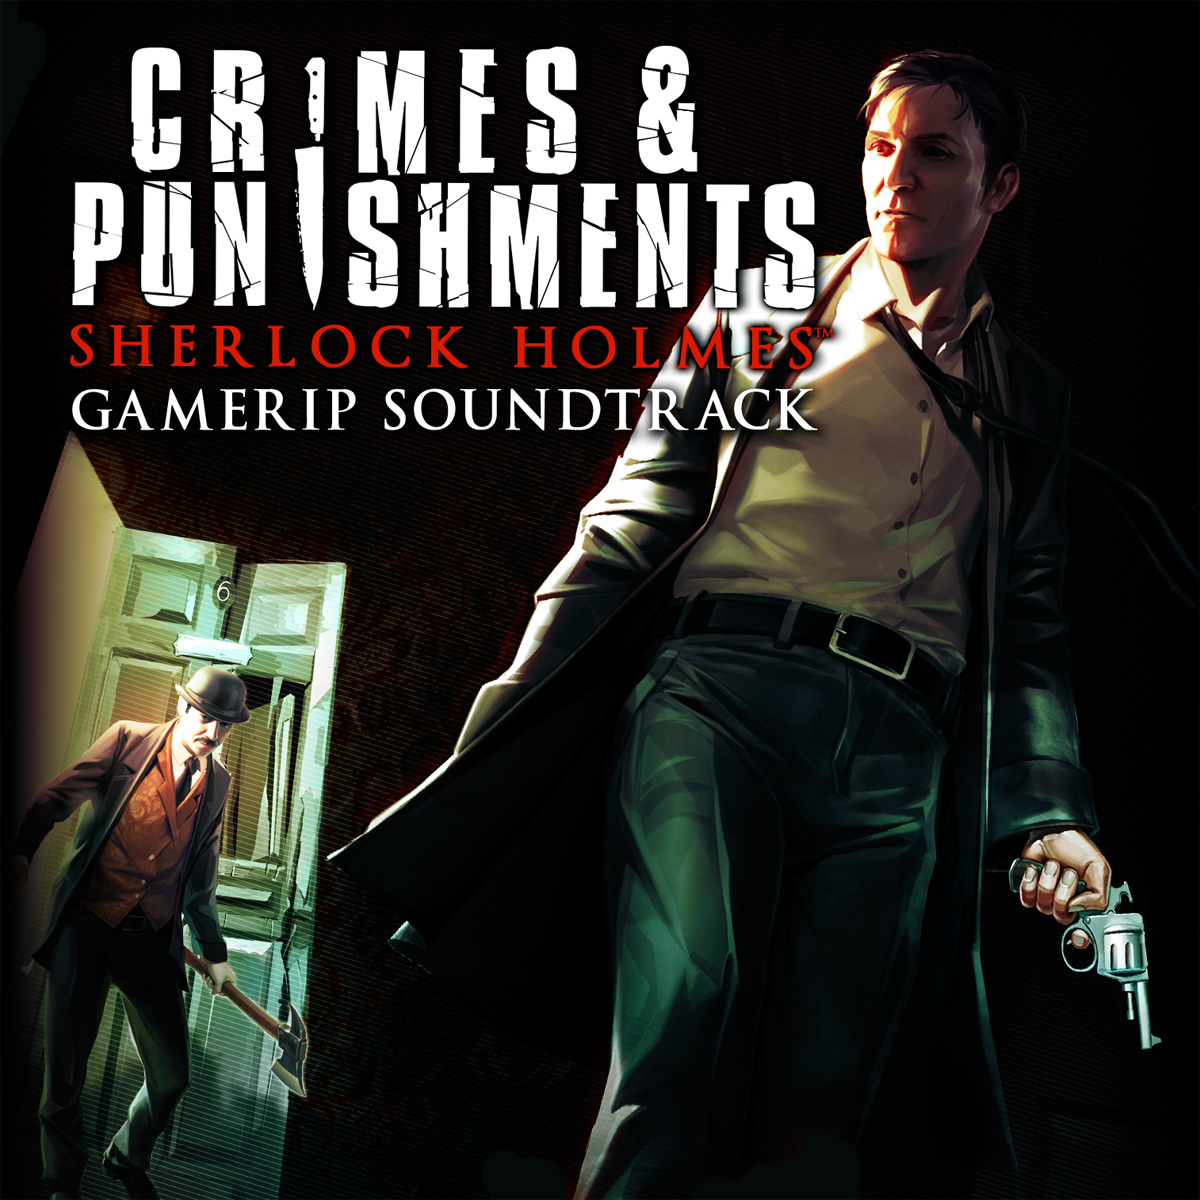 Скачать SHERLOCK HOLMES: CRIMES & PUNISHMENTS (2016) PS3 торрент